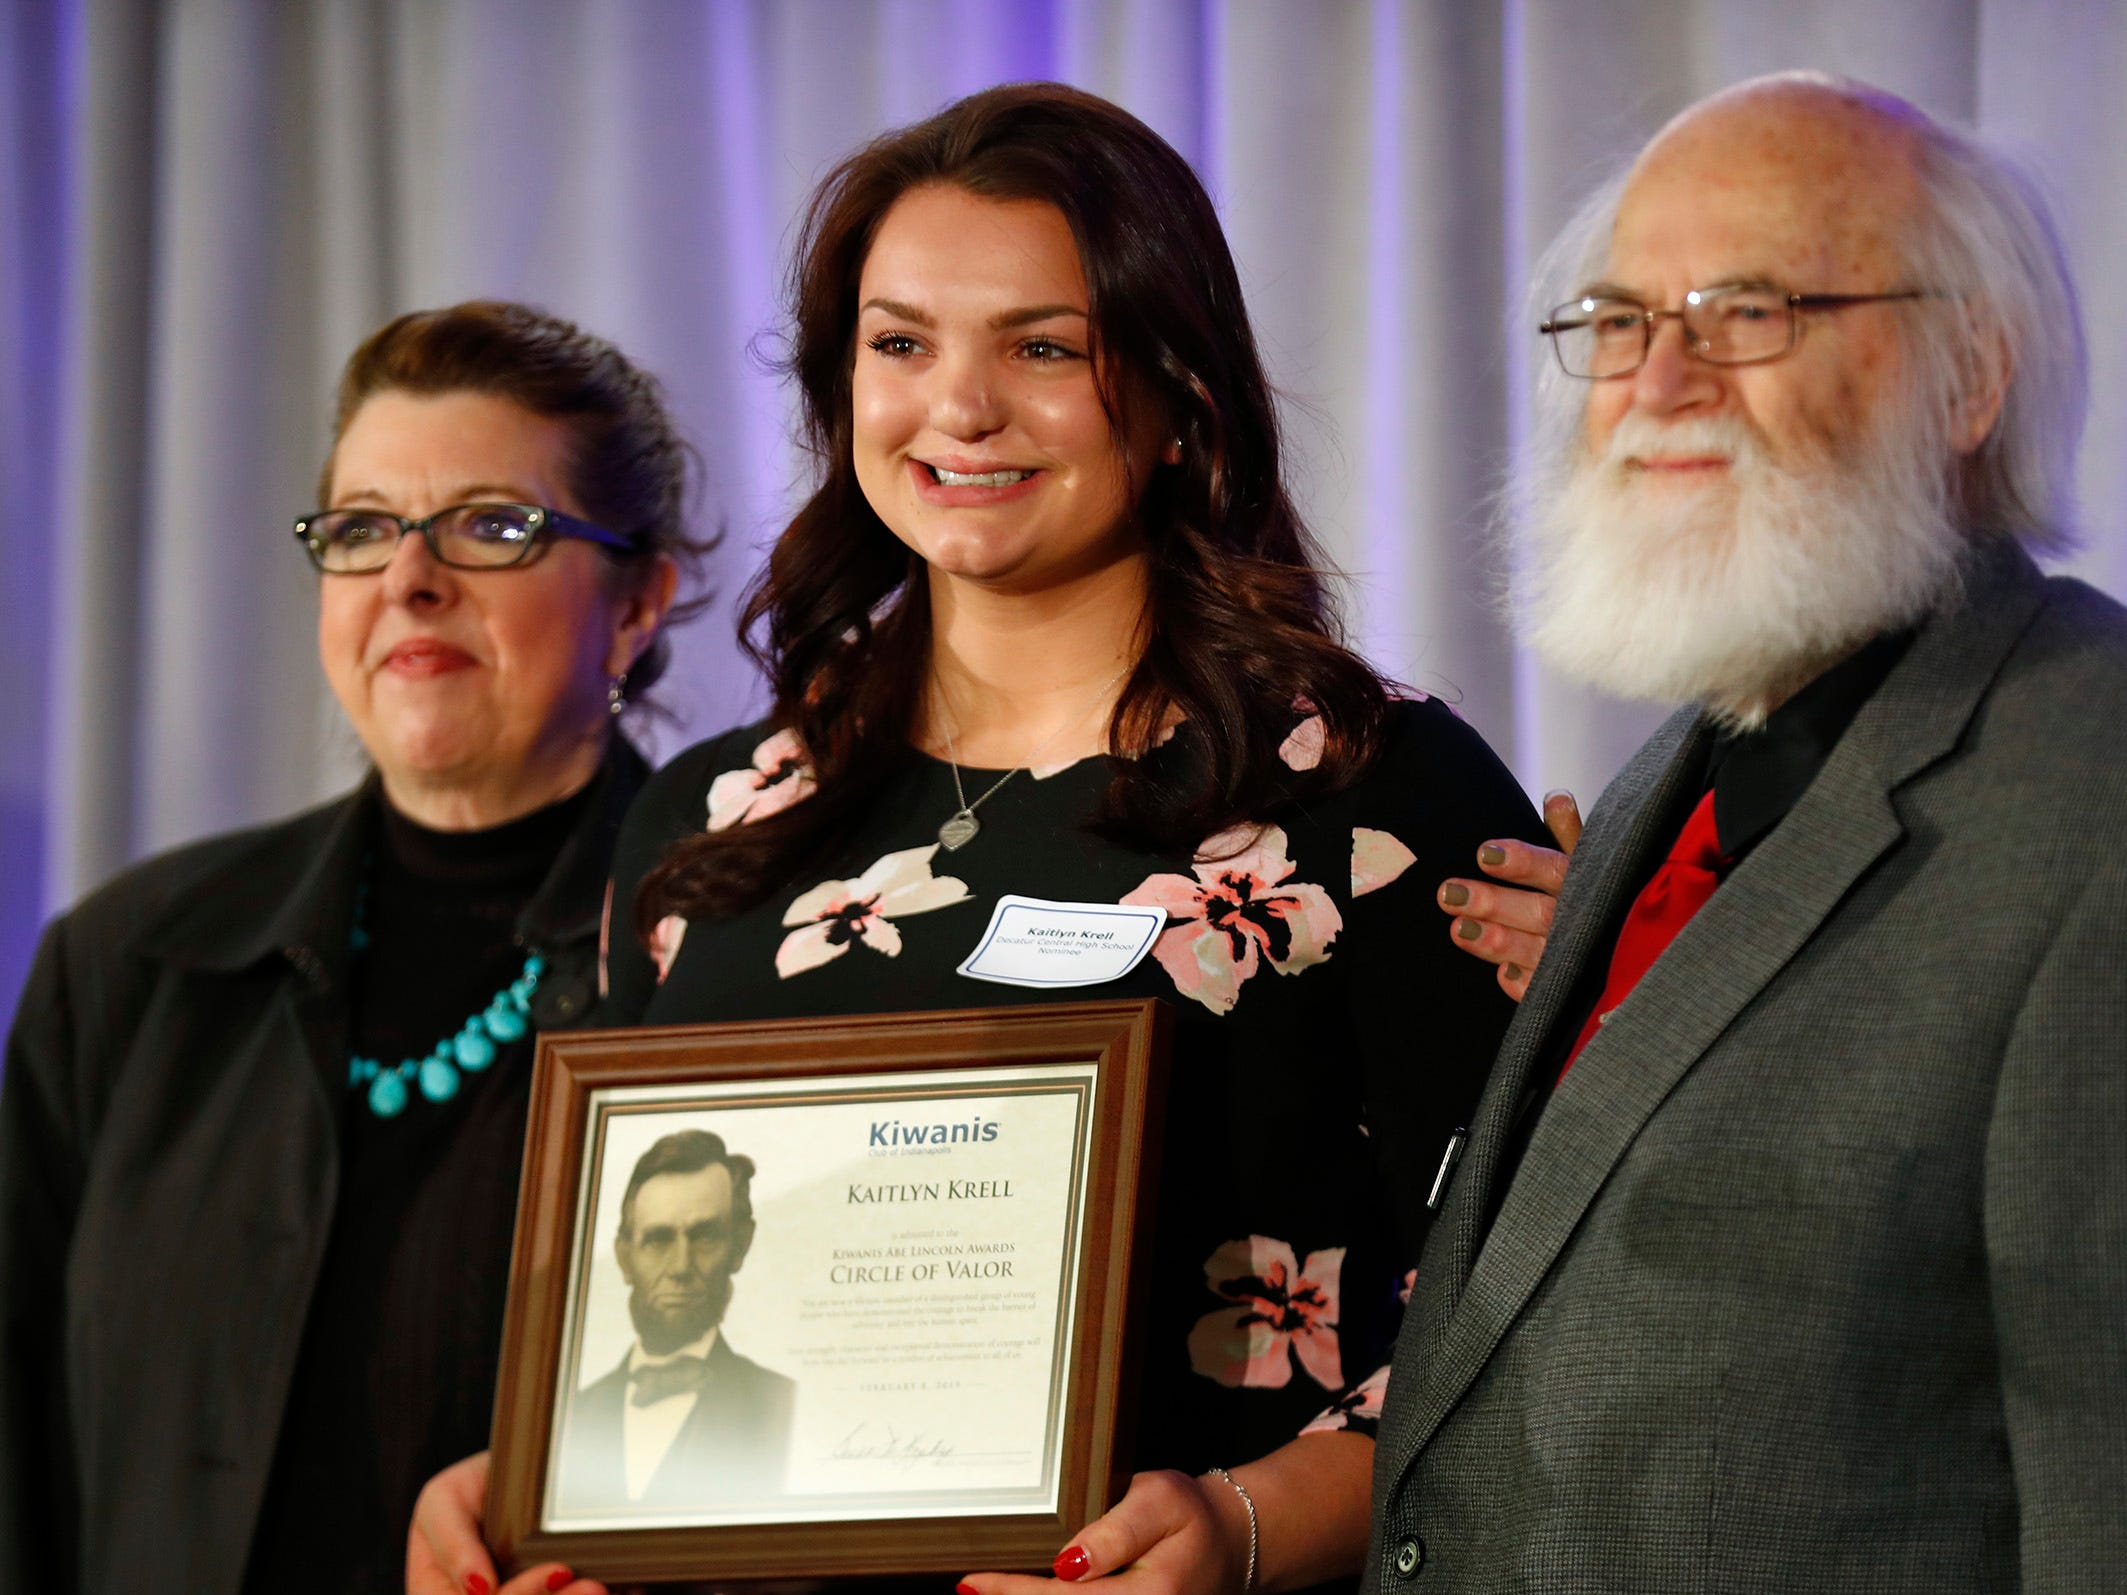 Decatur Central High School student Kaitlyn Krell, center, is honored with a Circle of Valor award at the 44th Annual Abe Lincoln Awards Program, Friday, Feb. 8, 2019. The Kiwanis Club of Indianapolis program was held at Ivy Tech Community College.  20 high school student were honored at the annual event which celebrates overcoming adversity in life to succeed.